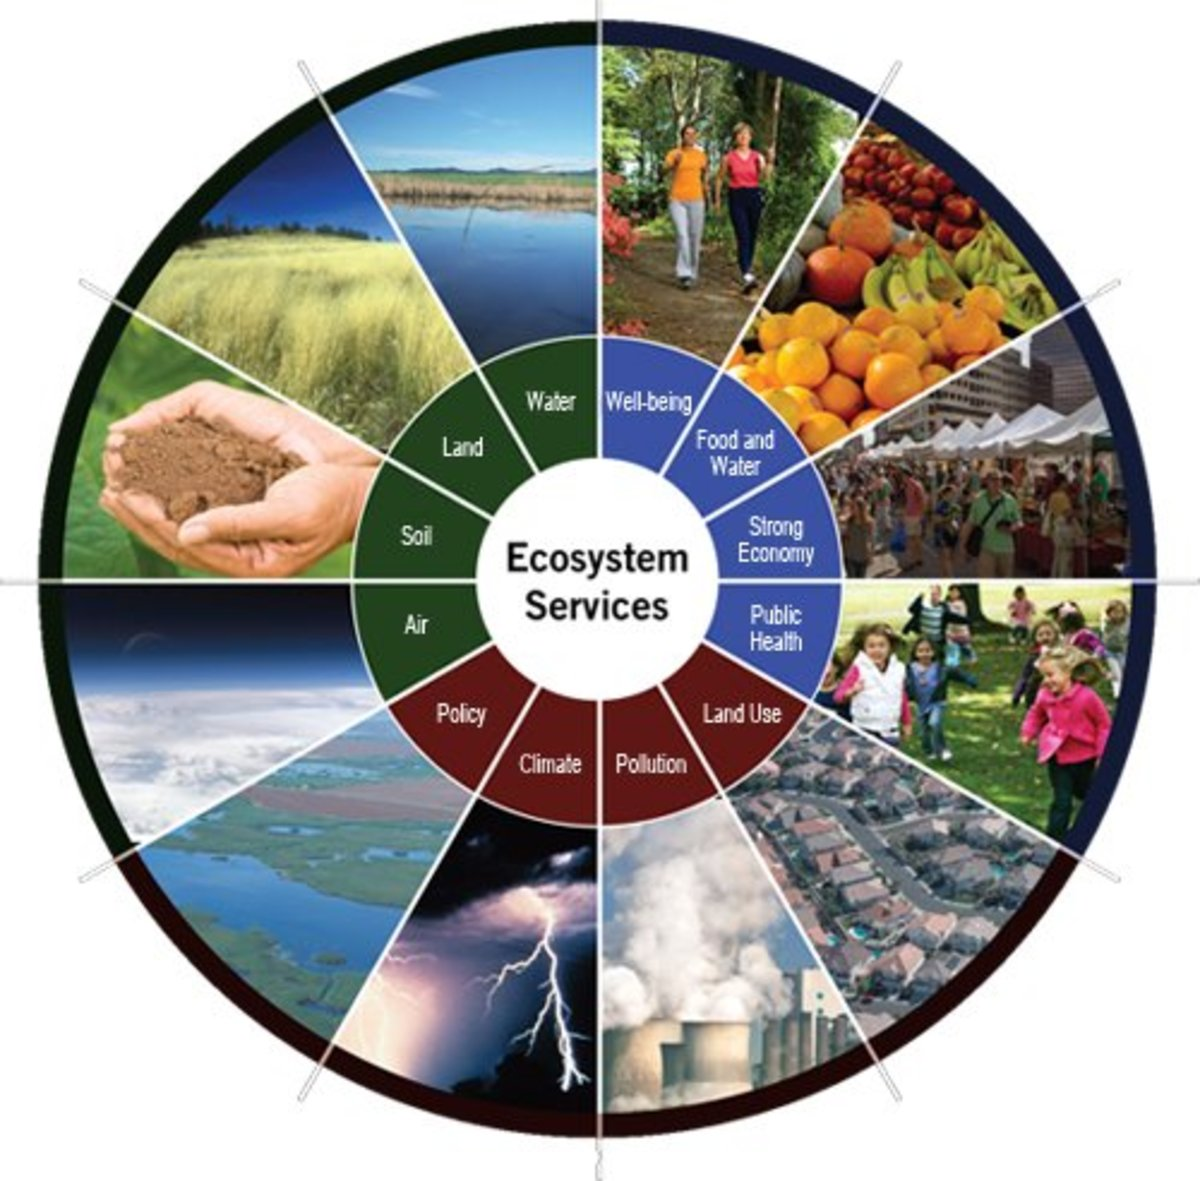 Ecosystem Services and Economic Values